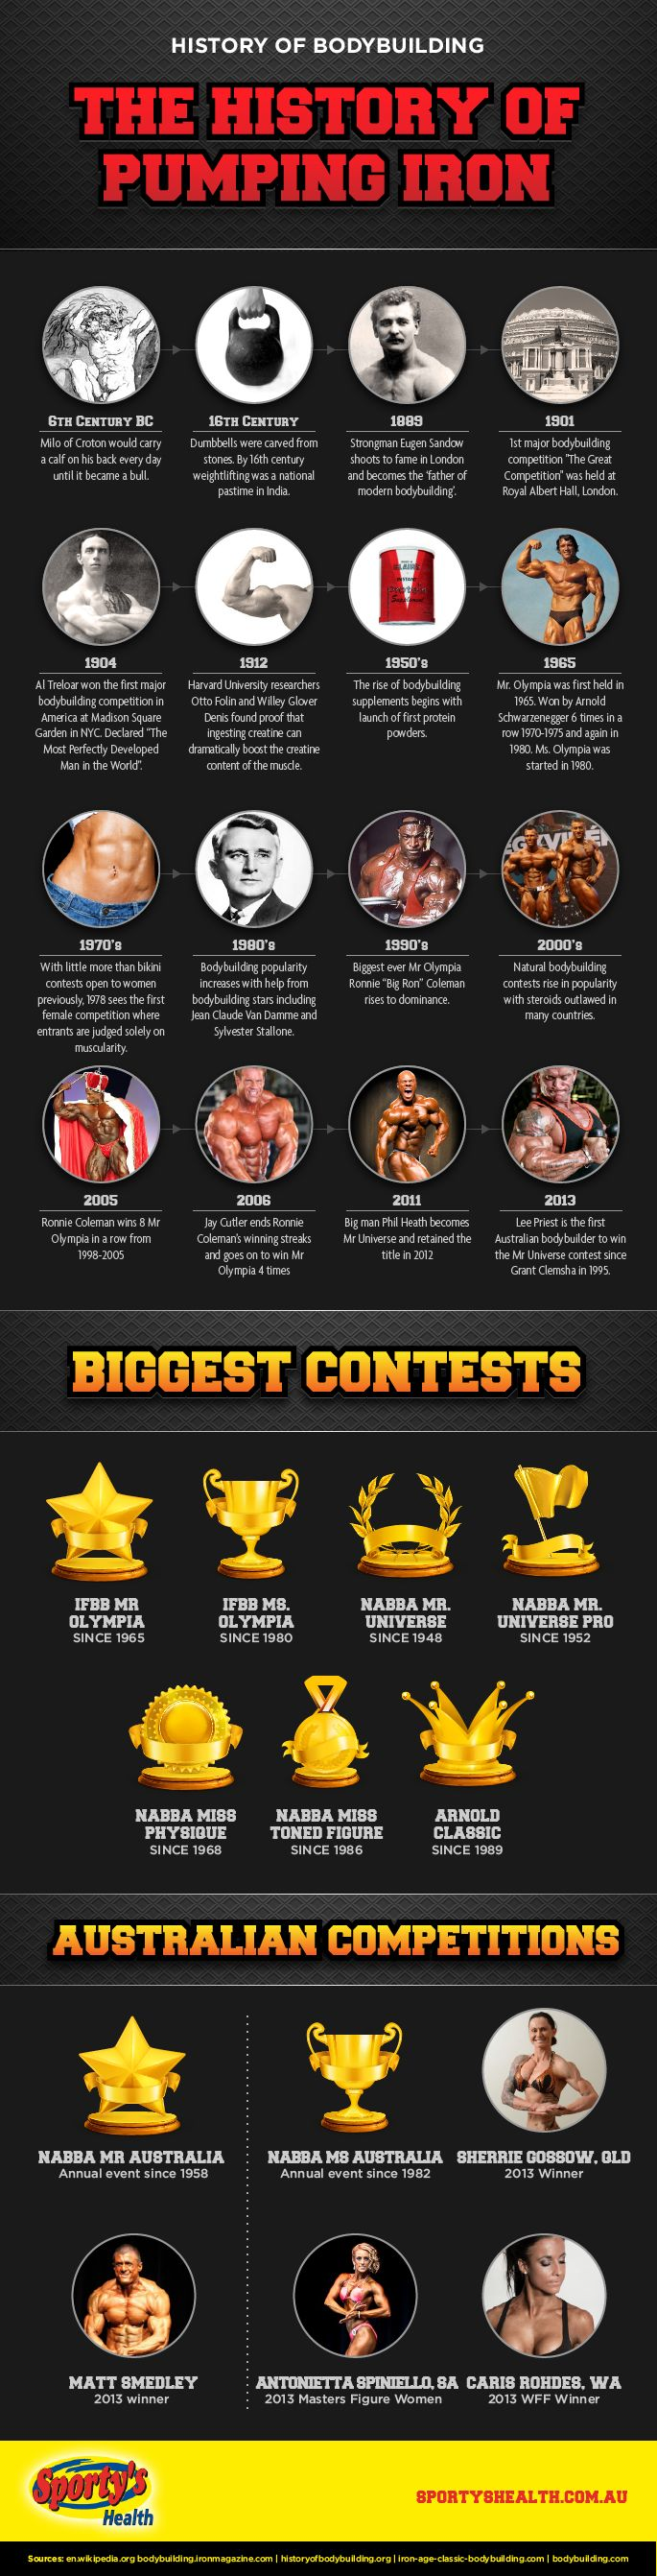 The History of Bodybuilding (by SportysHealth)